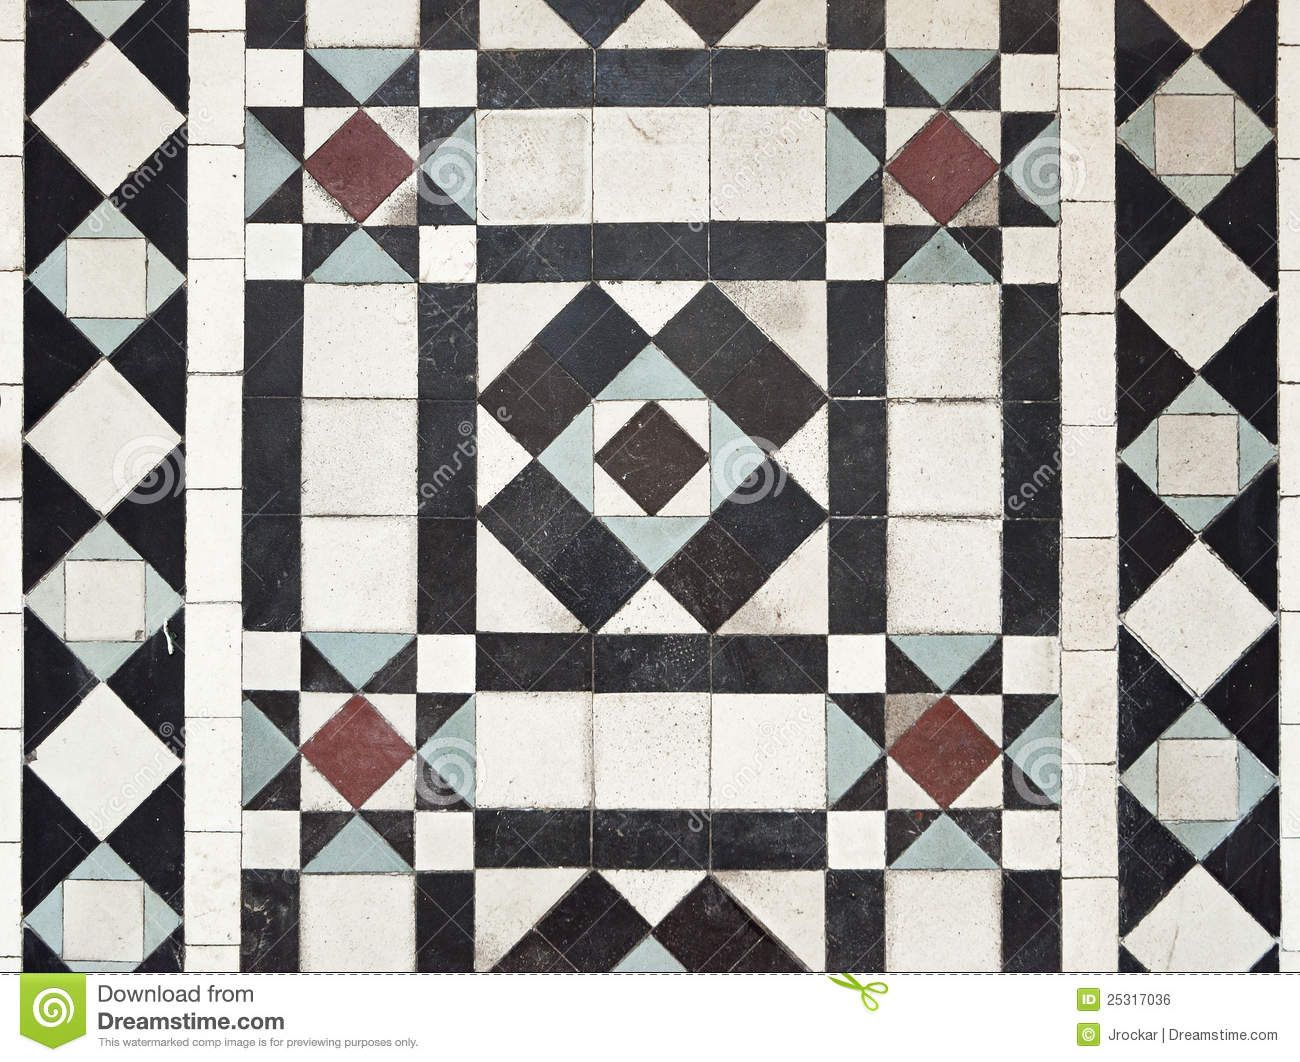 Image result for original style victorian floor tiles hallway image result for original style victorian floor tiles dailygadgetfo Images